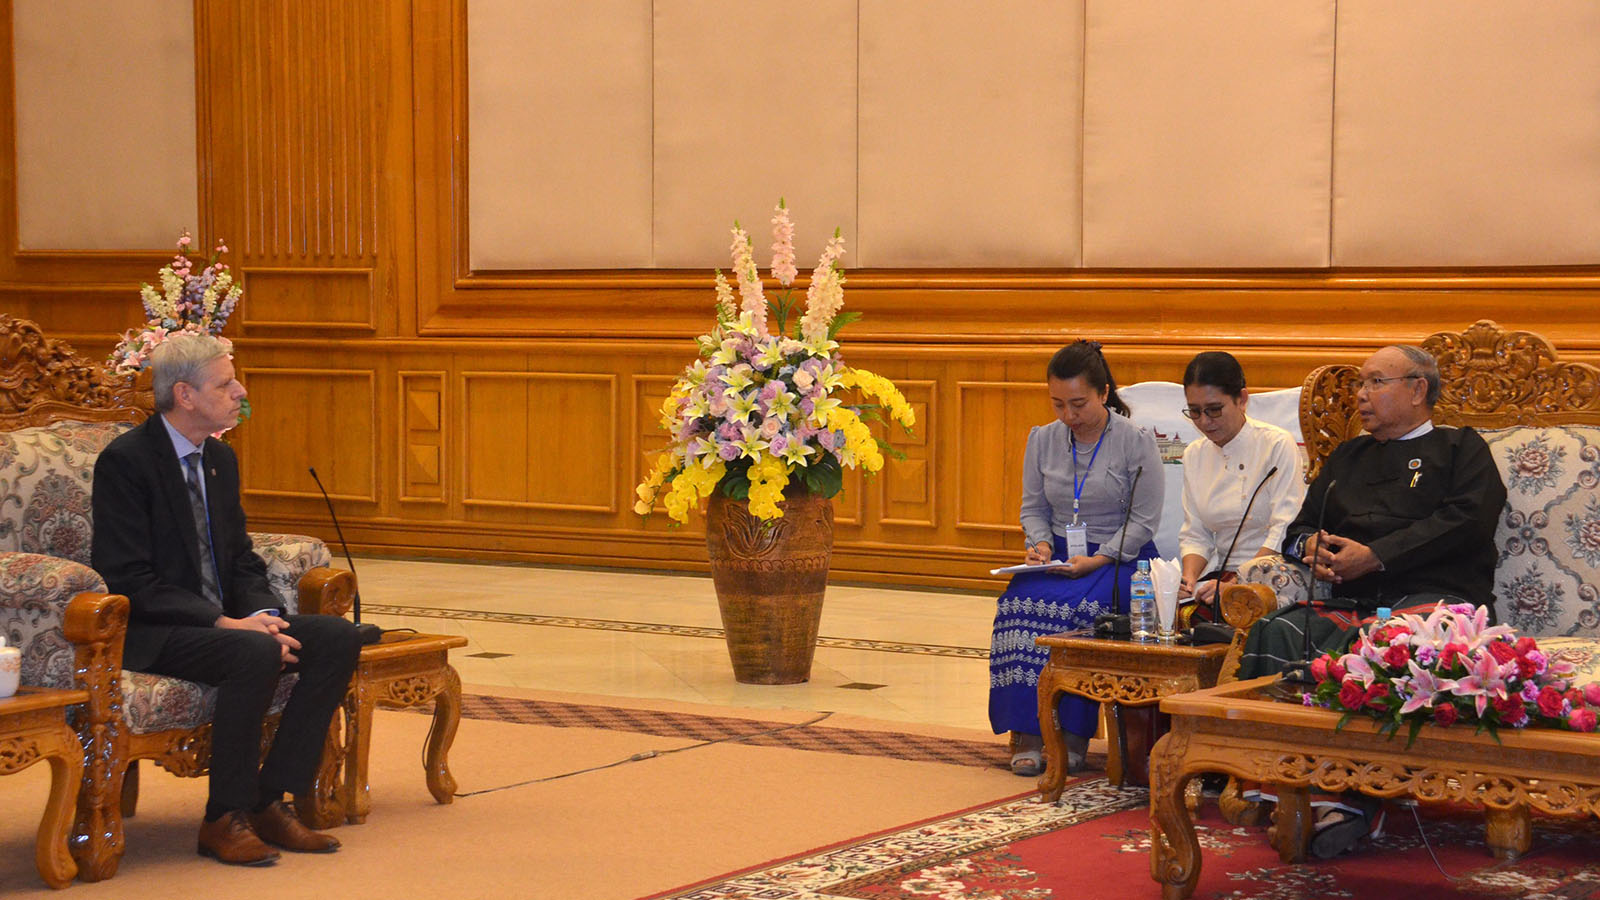 Amyotha Hluttaw Speaker Mahn Win Khaing Than meets with Mr Jan Hornik, Vice President of the Czech Republic's Senate, in Nay Pyi Taw yesterday.Photo: MNA